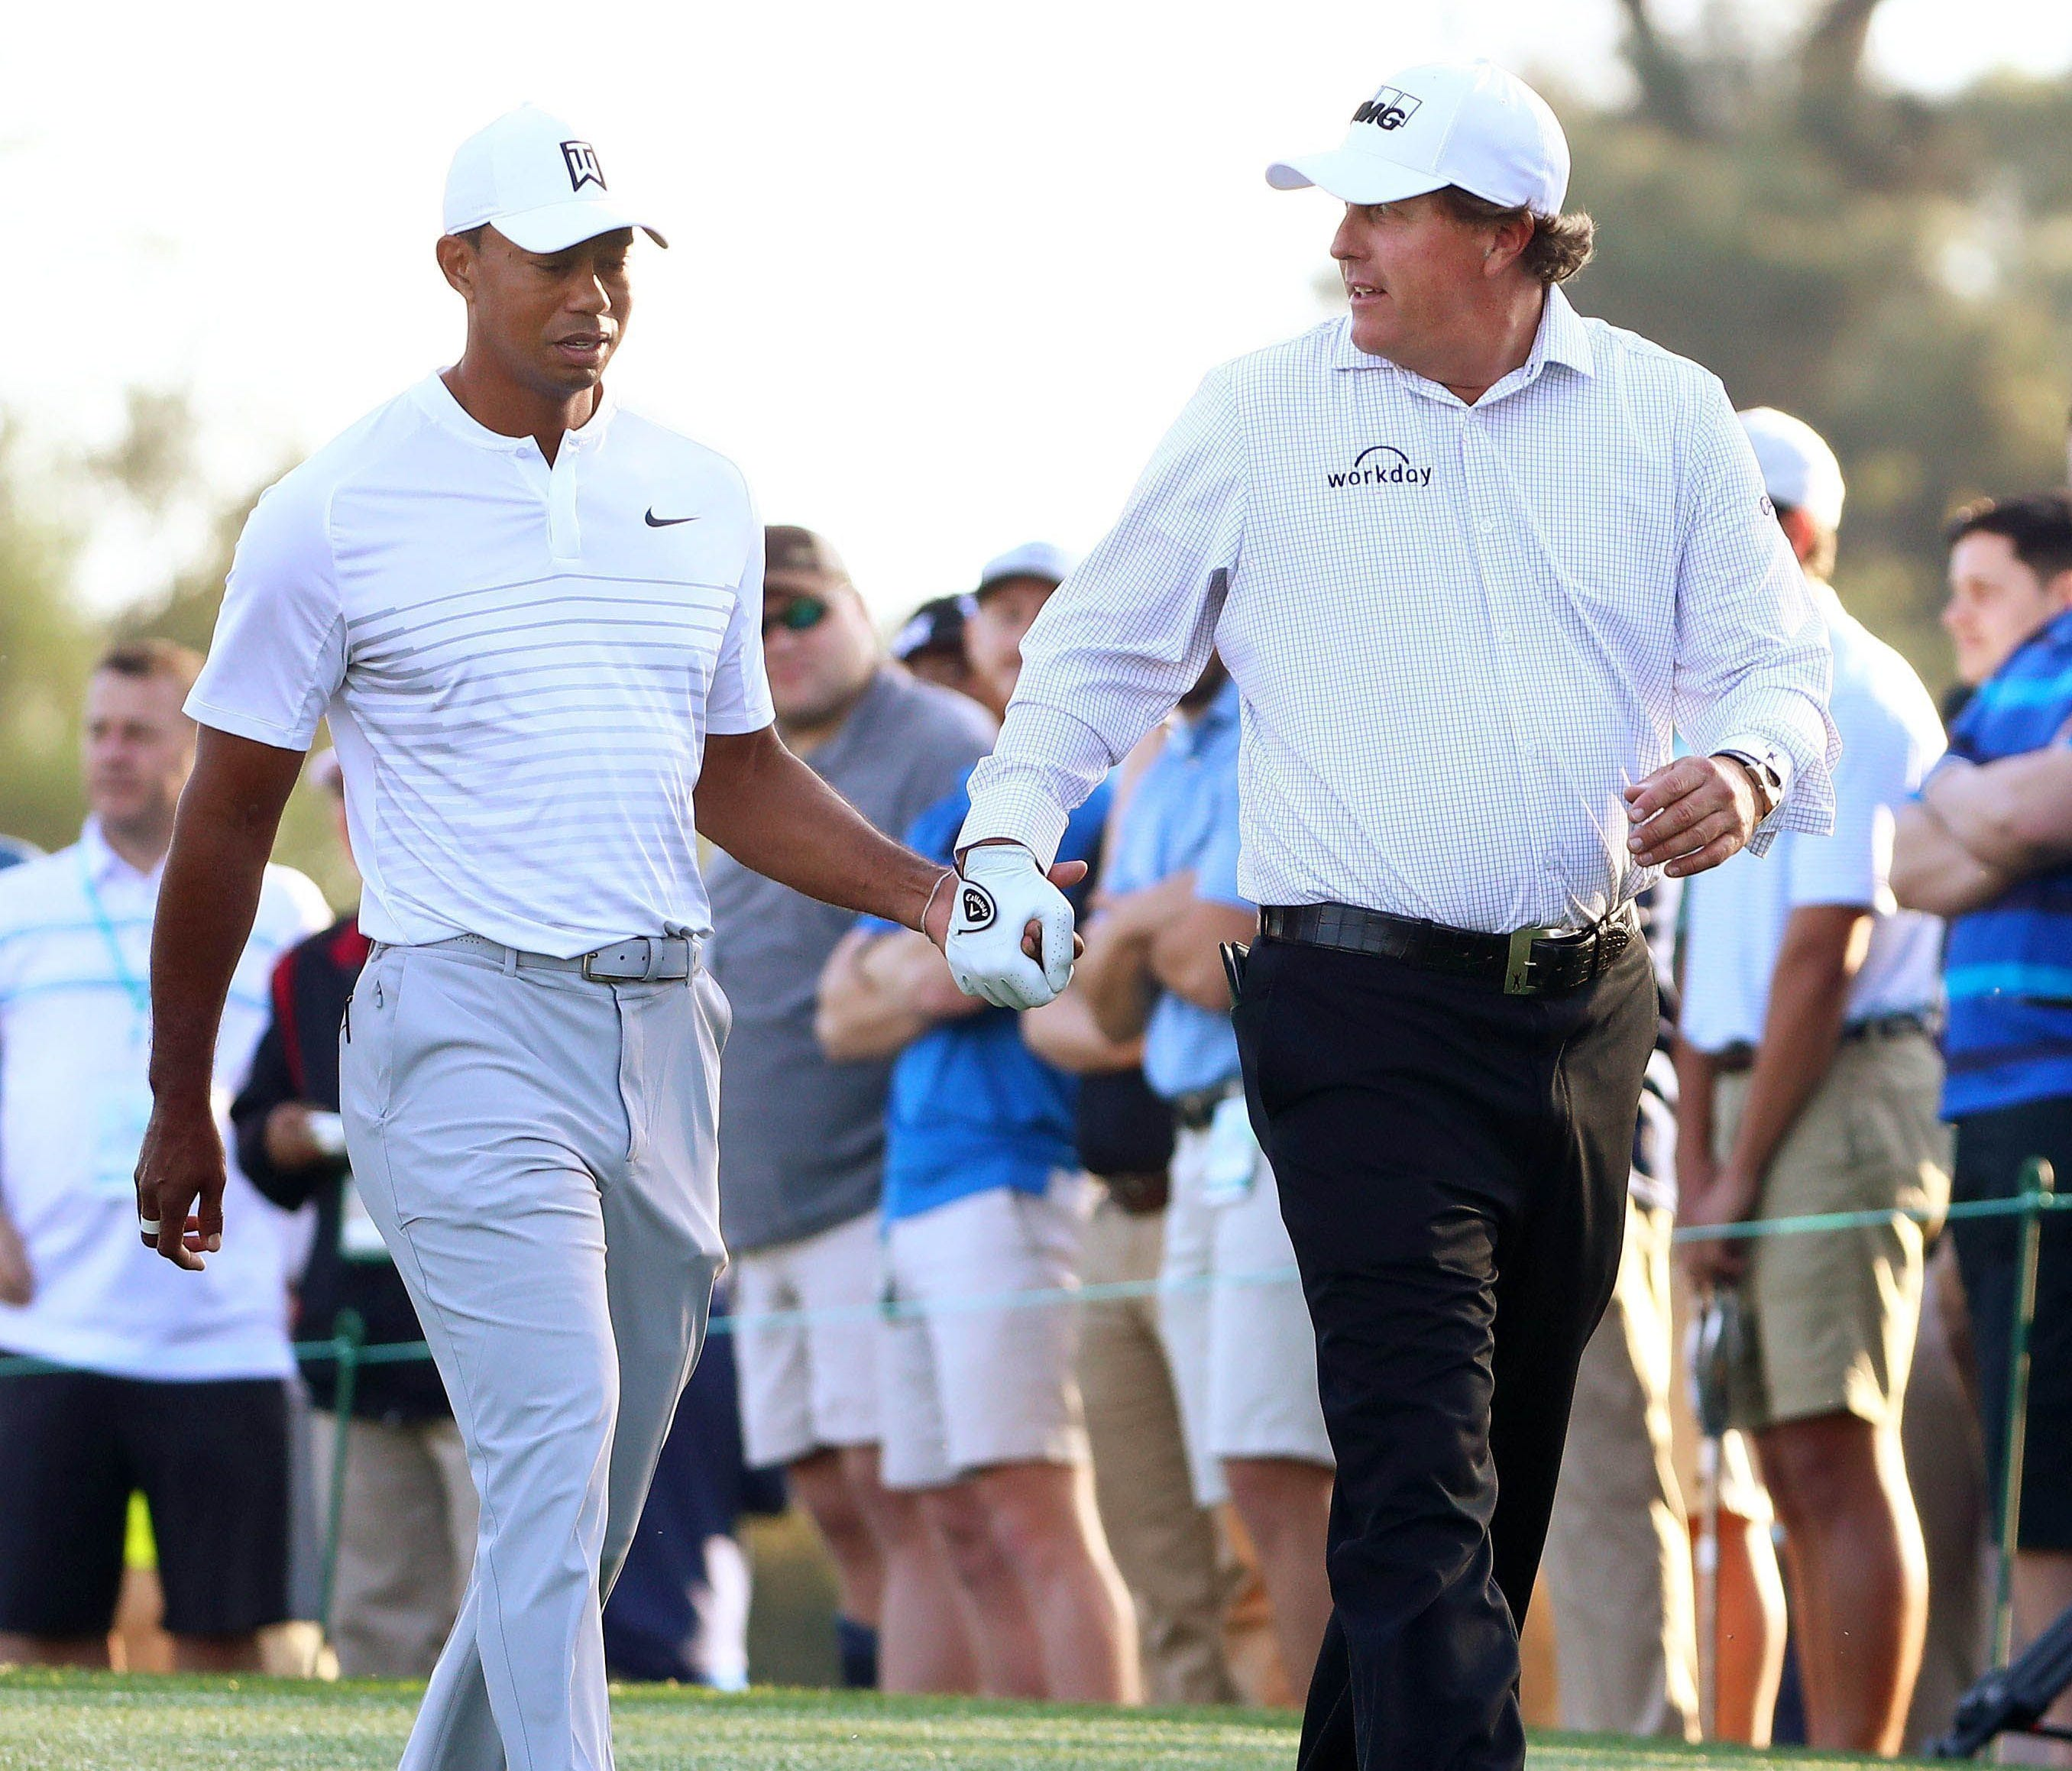 Tiger Woods and Phil Mickelson walk off the 10th tee box hand-in-hand during a practice round for the Masters Tournament at Augusta National Golf Club in Augusta, Ga.